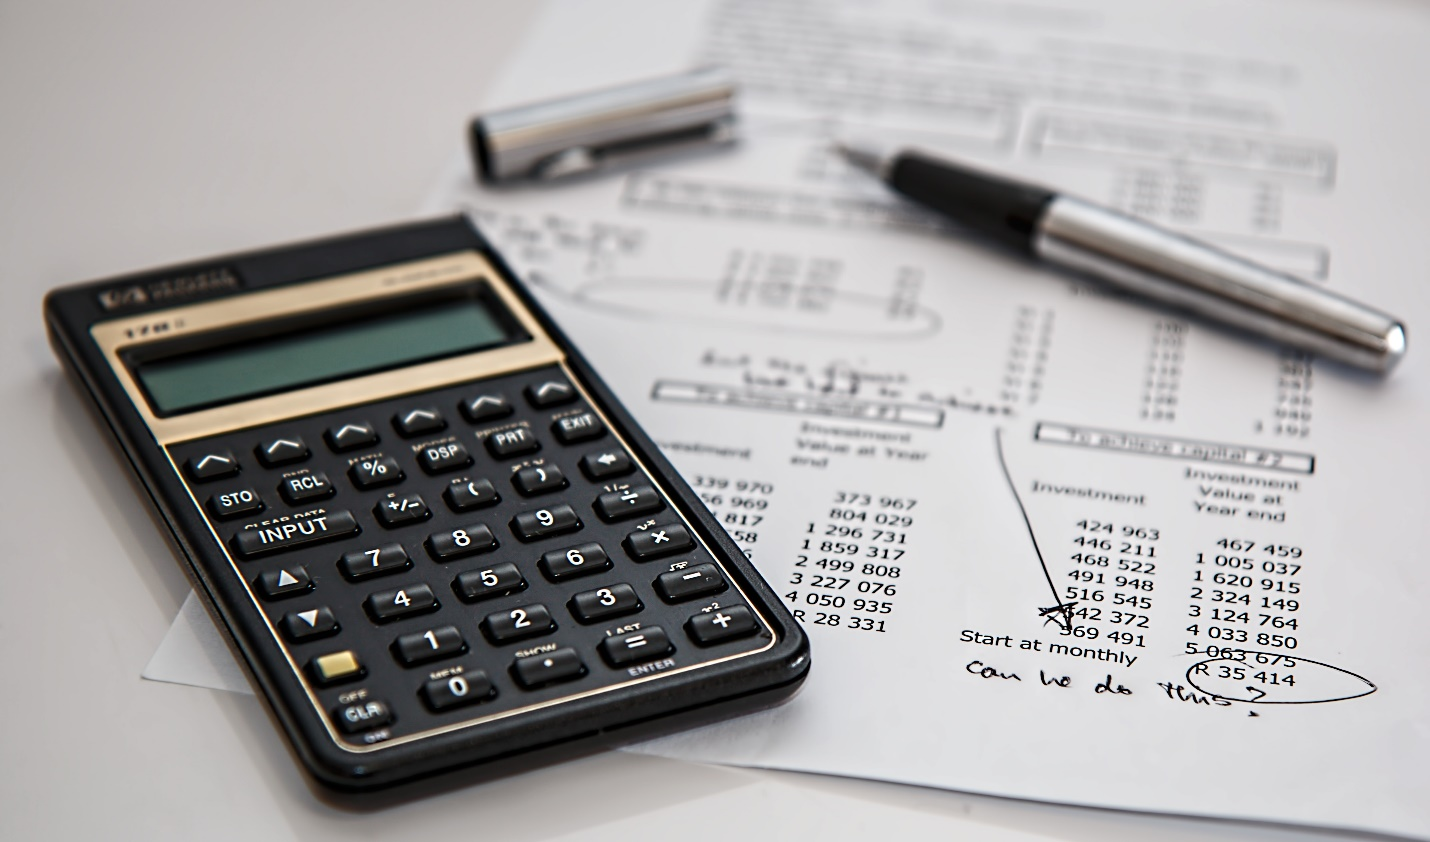 A calculator and pen on top of papers  Description automatically generated with medium confidence